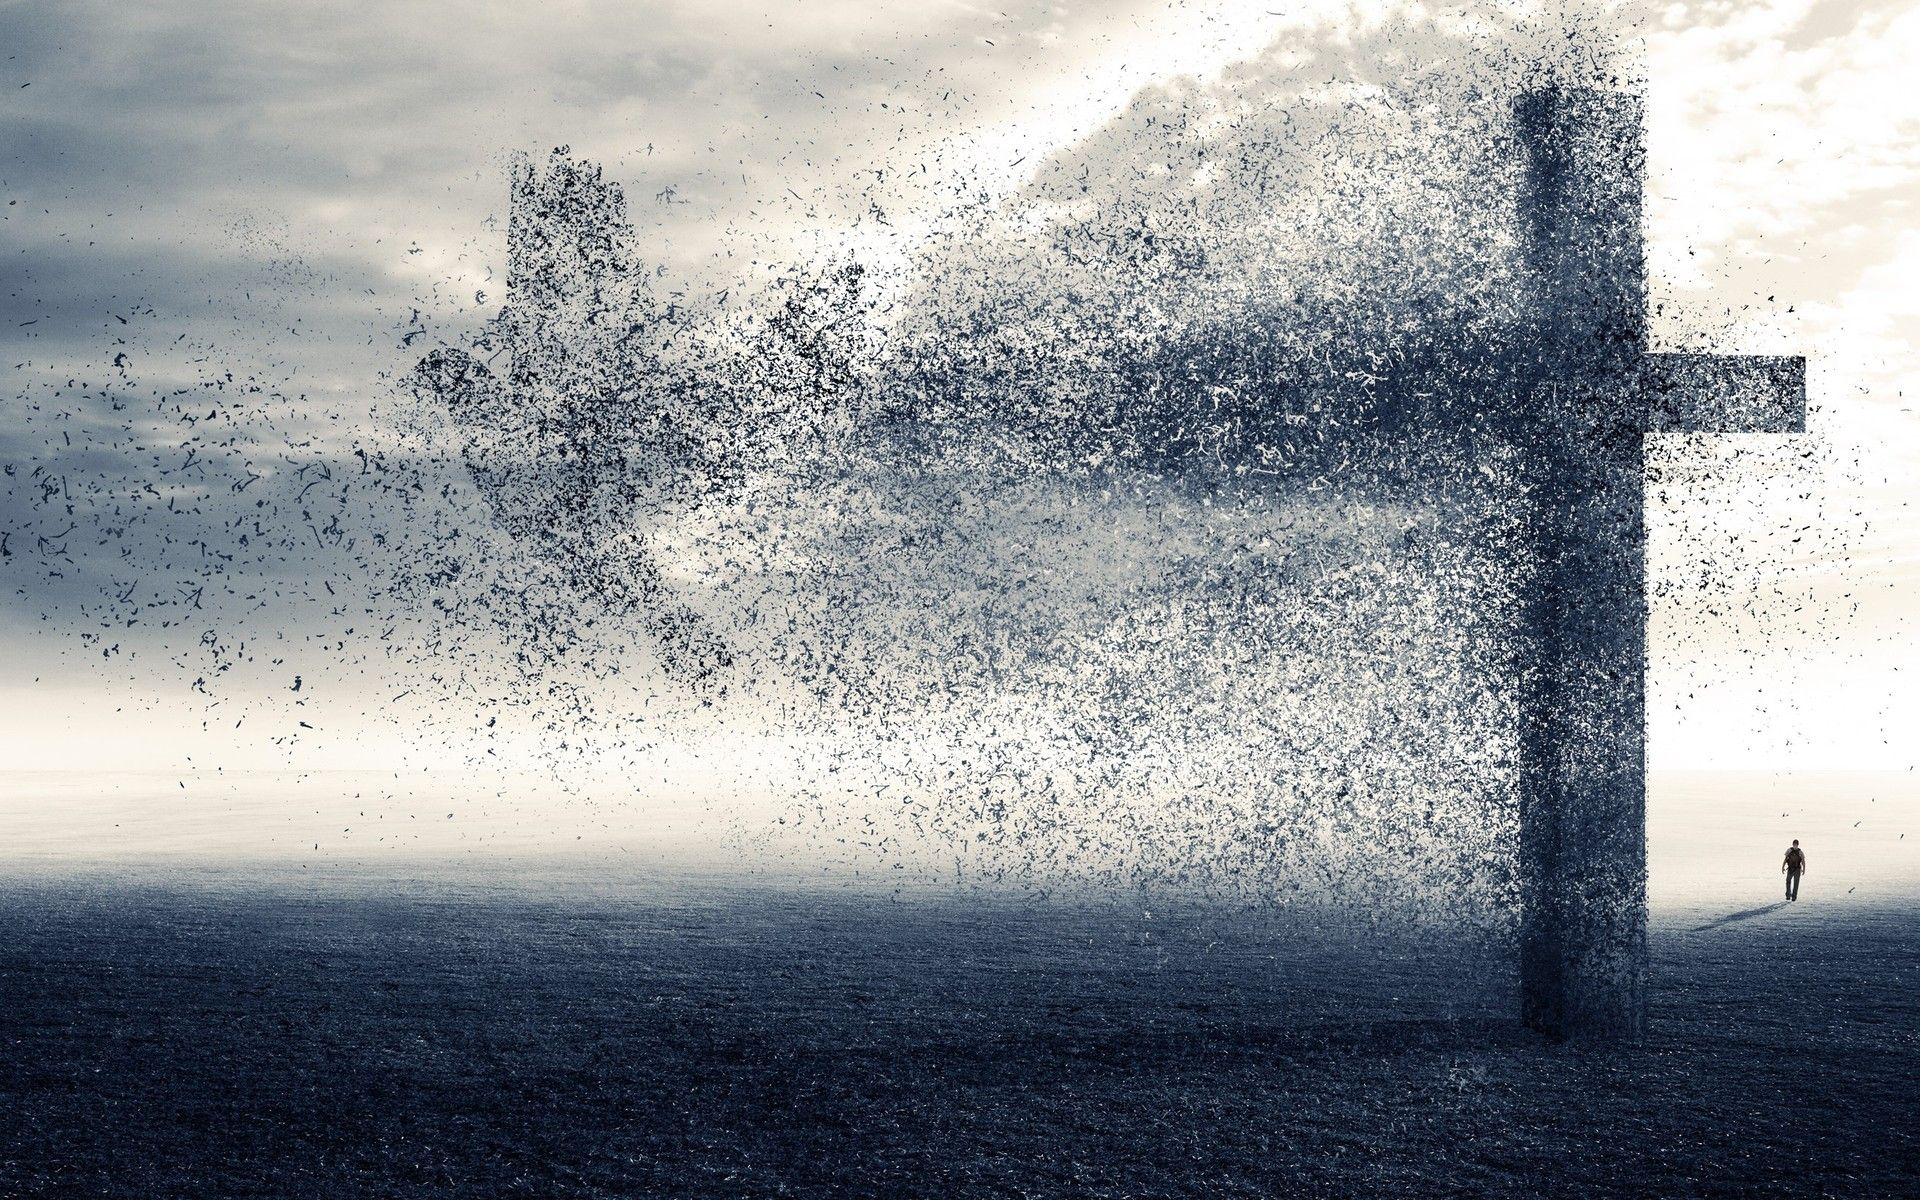 Awesome cross hd image amazingpict wallpapers pinterest awesome cross hd image voltagebd Gallery